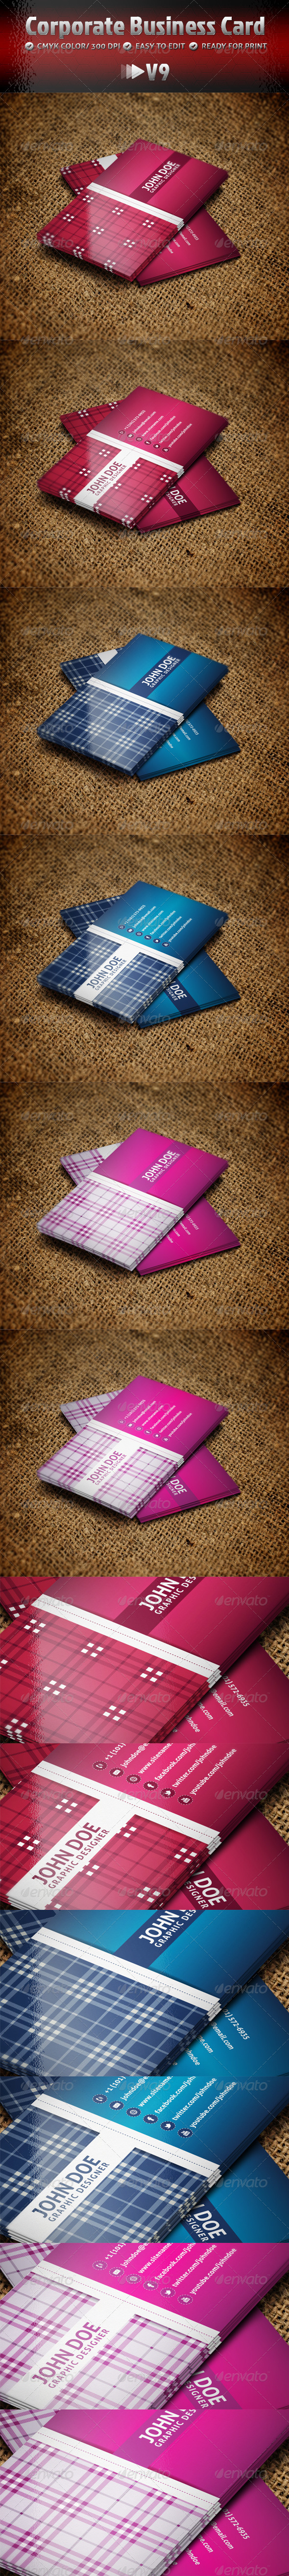 Corporate Business Card V9 - Business Cards Print Templates